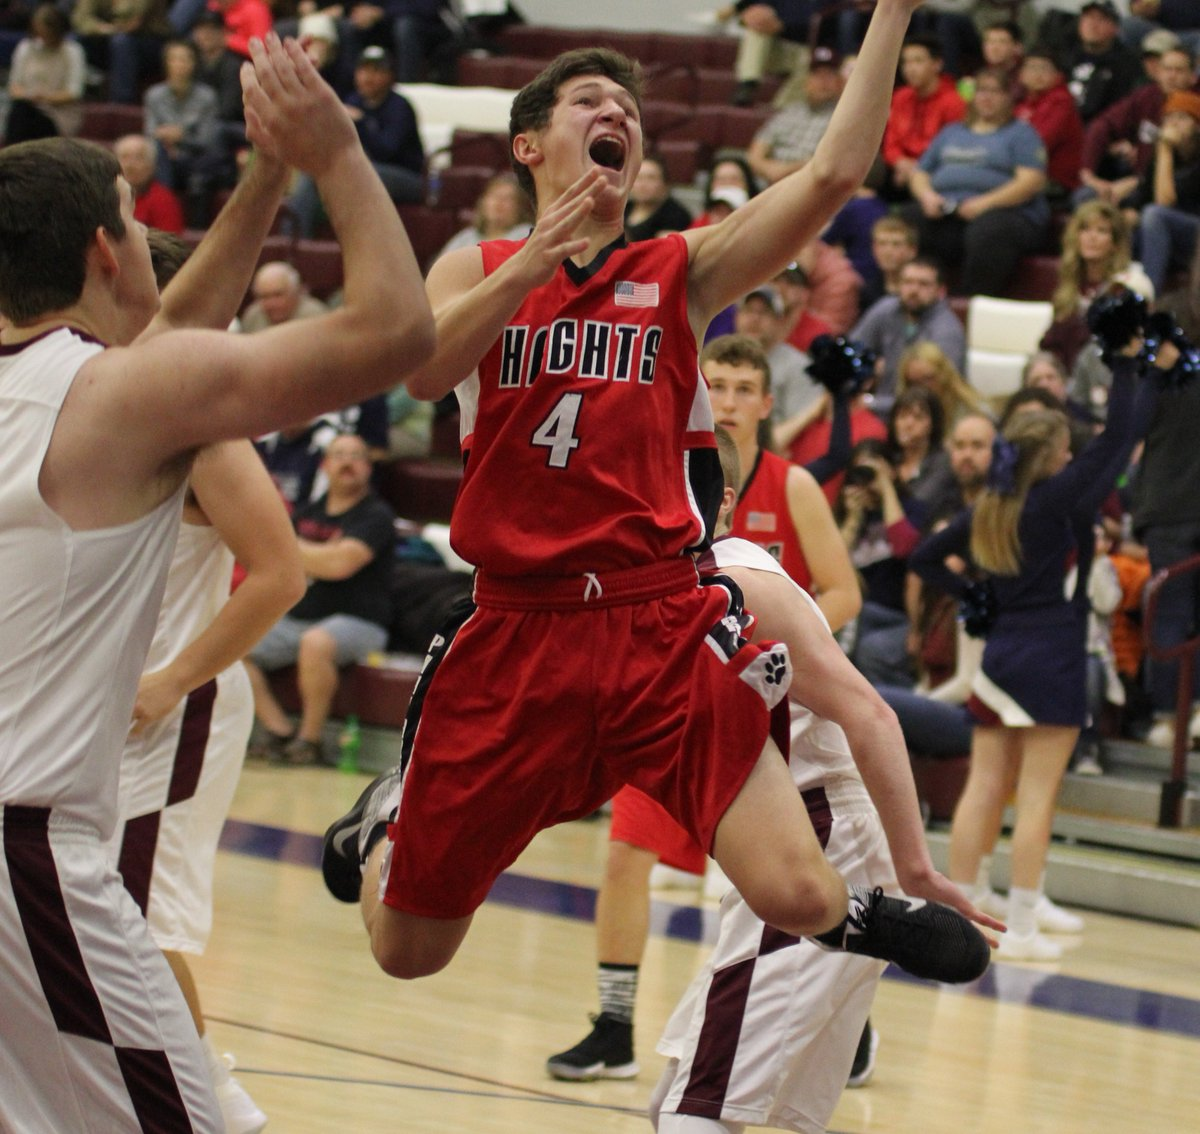 Photos from @PHPantherSports girls-boys doubleheaders at Garrett on Saturday.